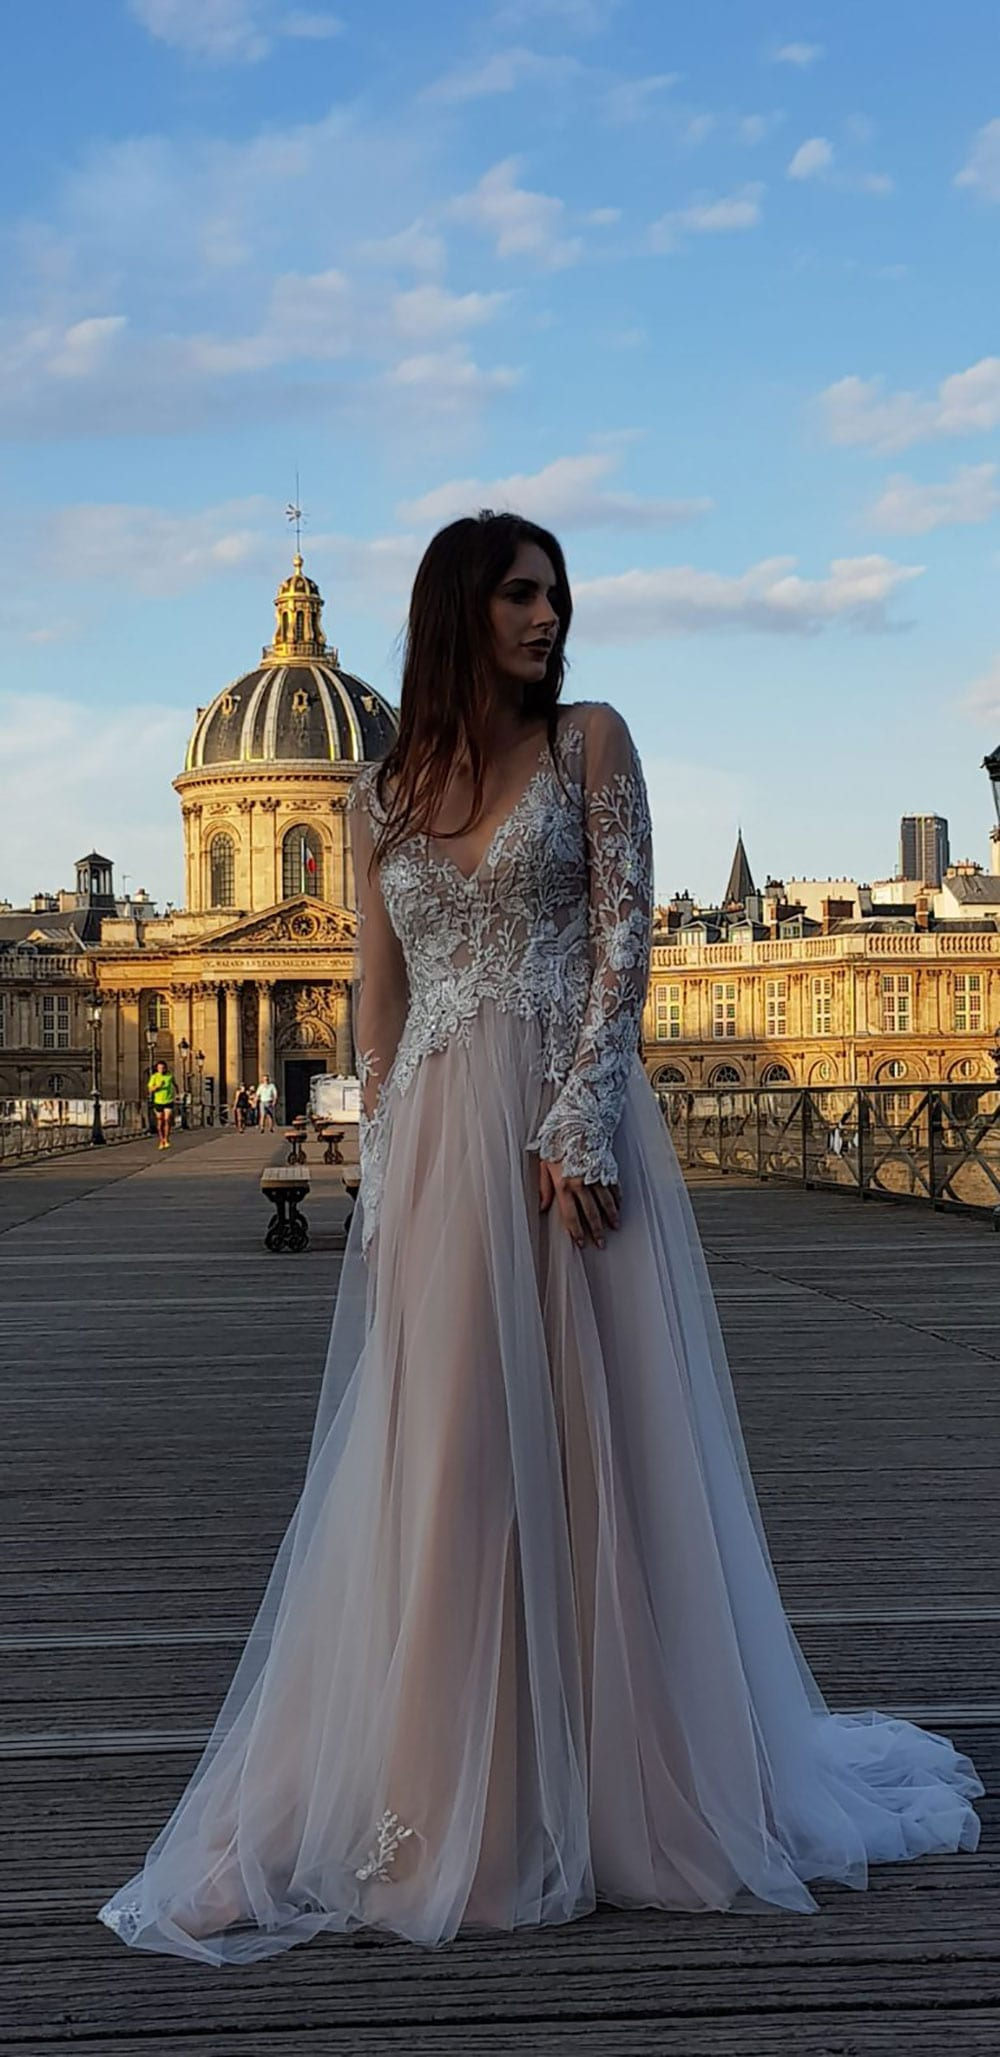 Model wearing Vinka Design Suri Wedding Dress, a Backless Silver Tulle and Lace Gown with Long Sleeves dress flowing in Paris street